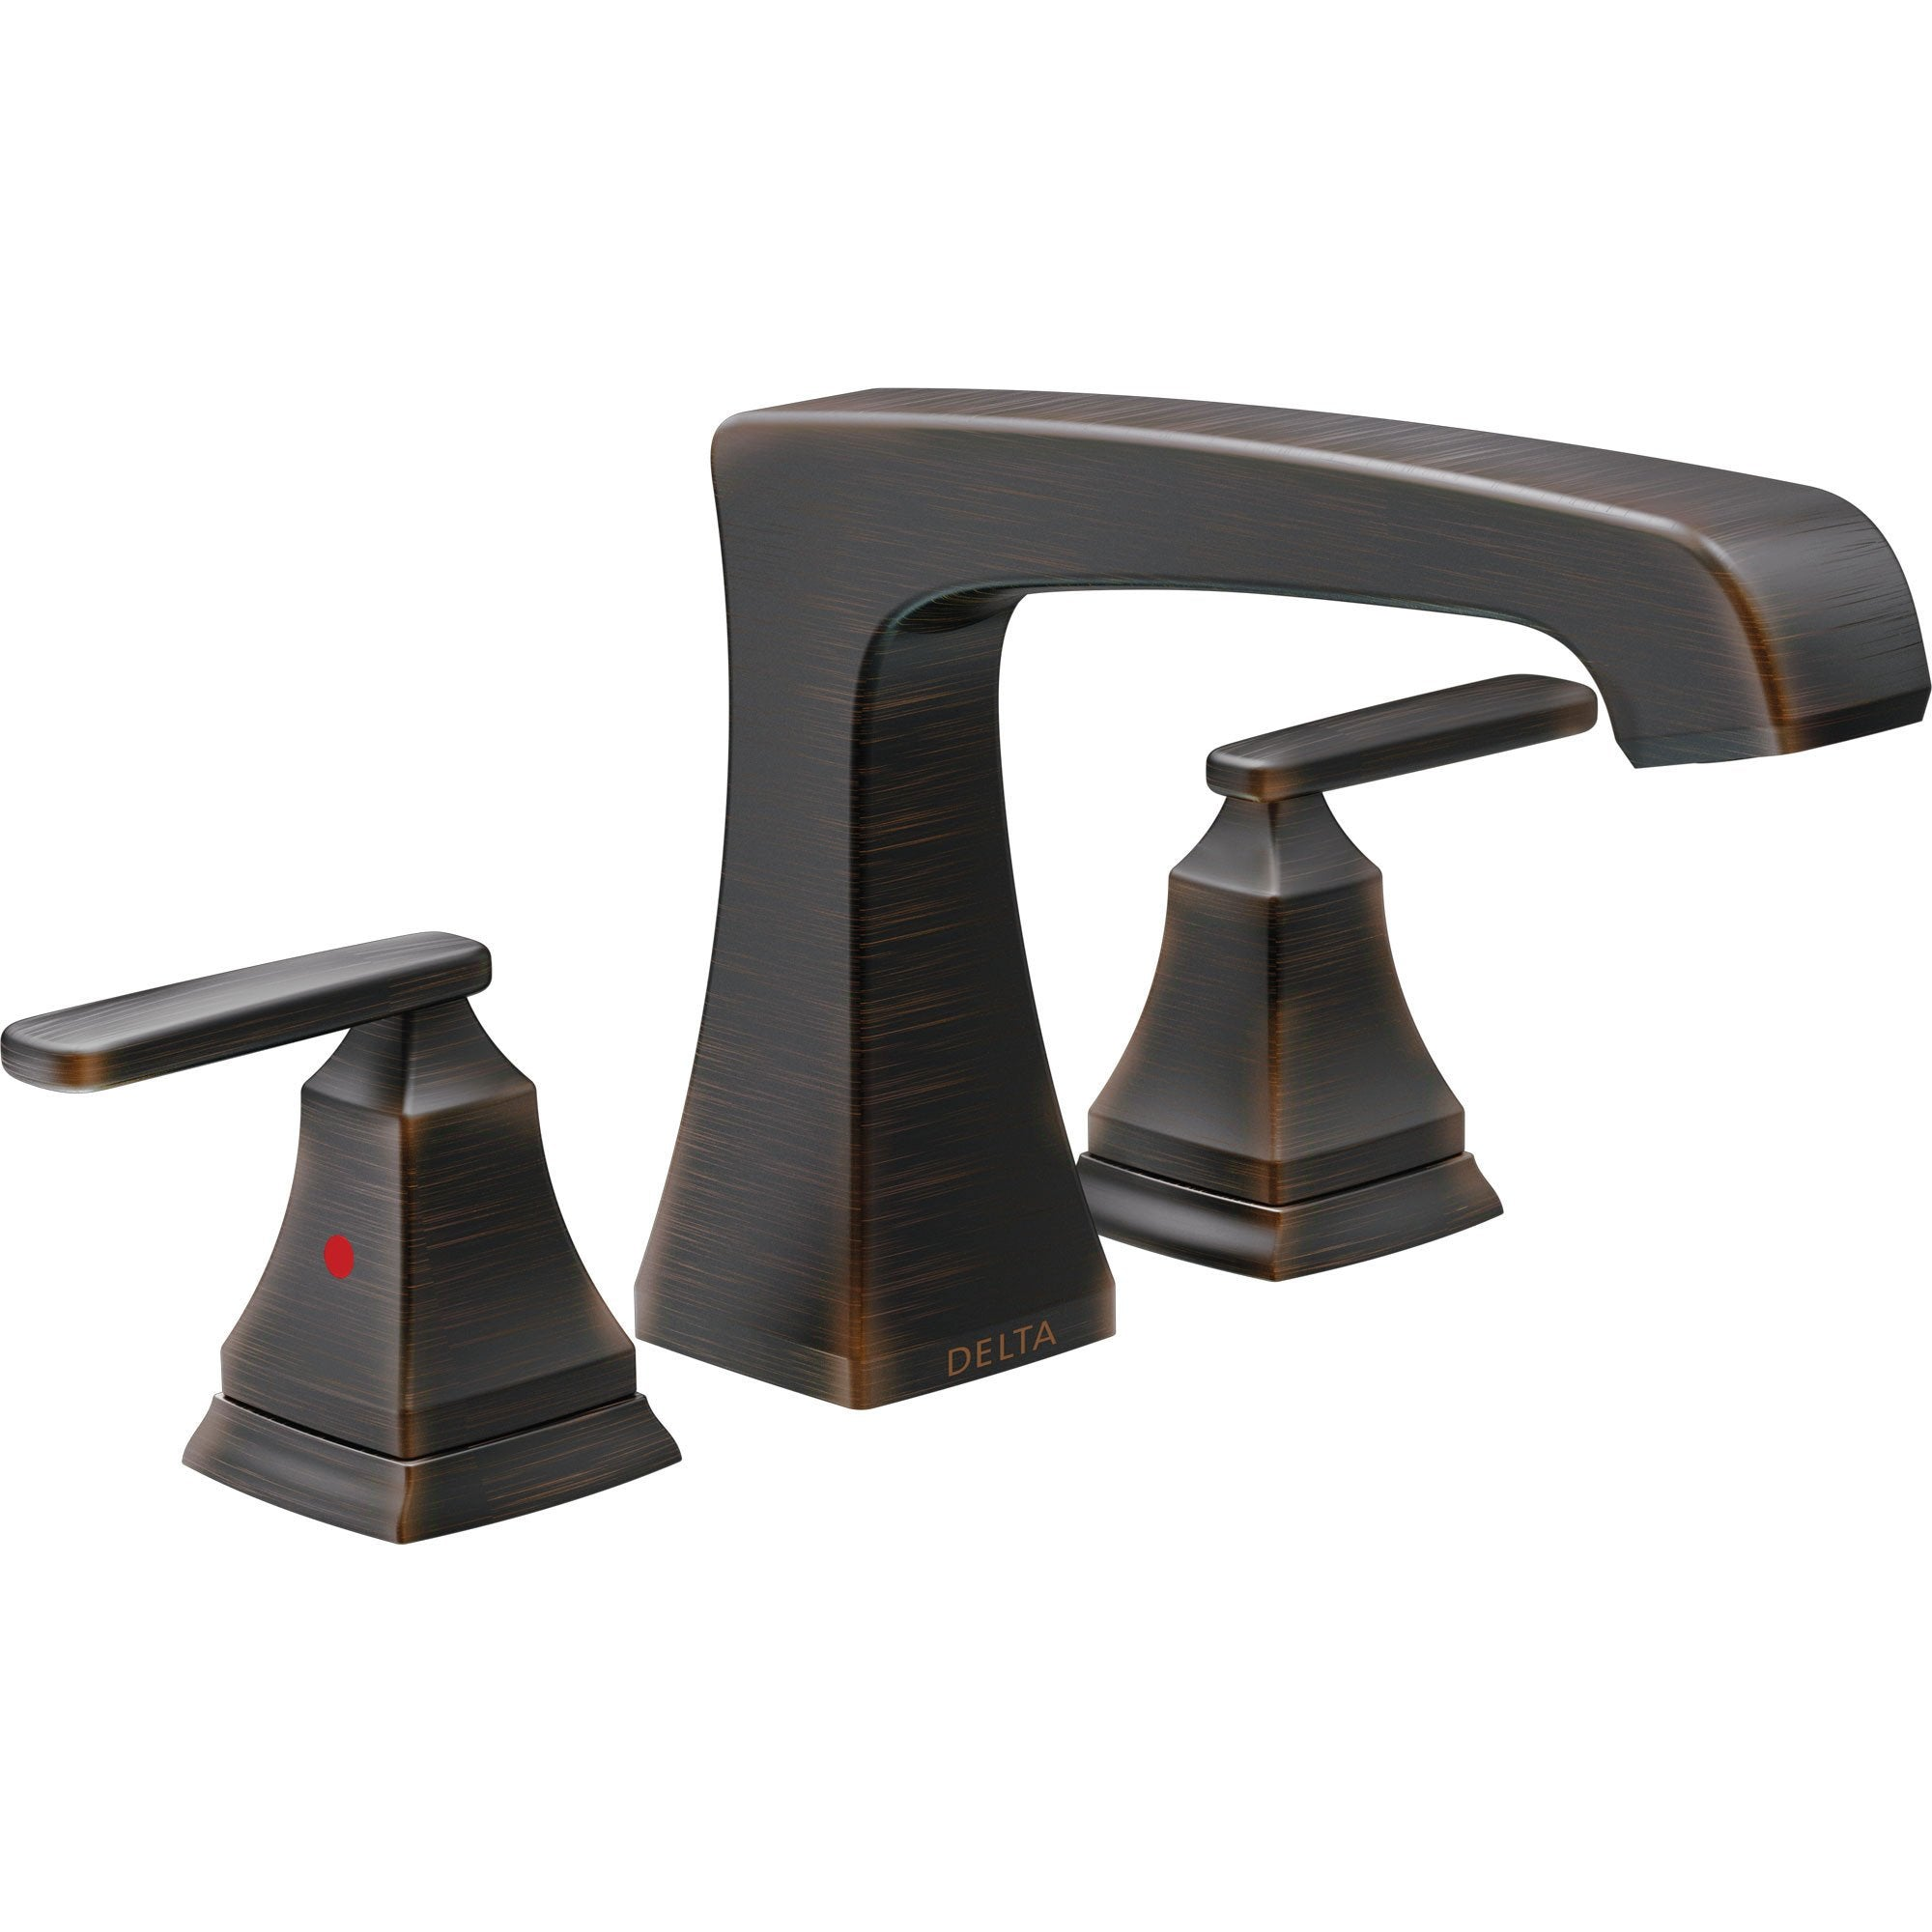 Delta Ashlyn Modern Venetian Bronze Finish Roman Tub Filler Faucet INCLUDES Valve and Lever Handles D1093V